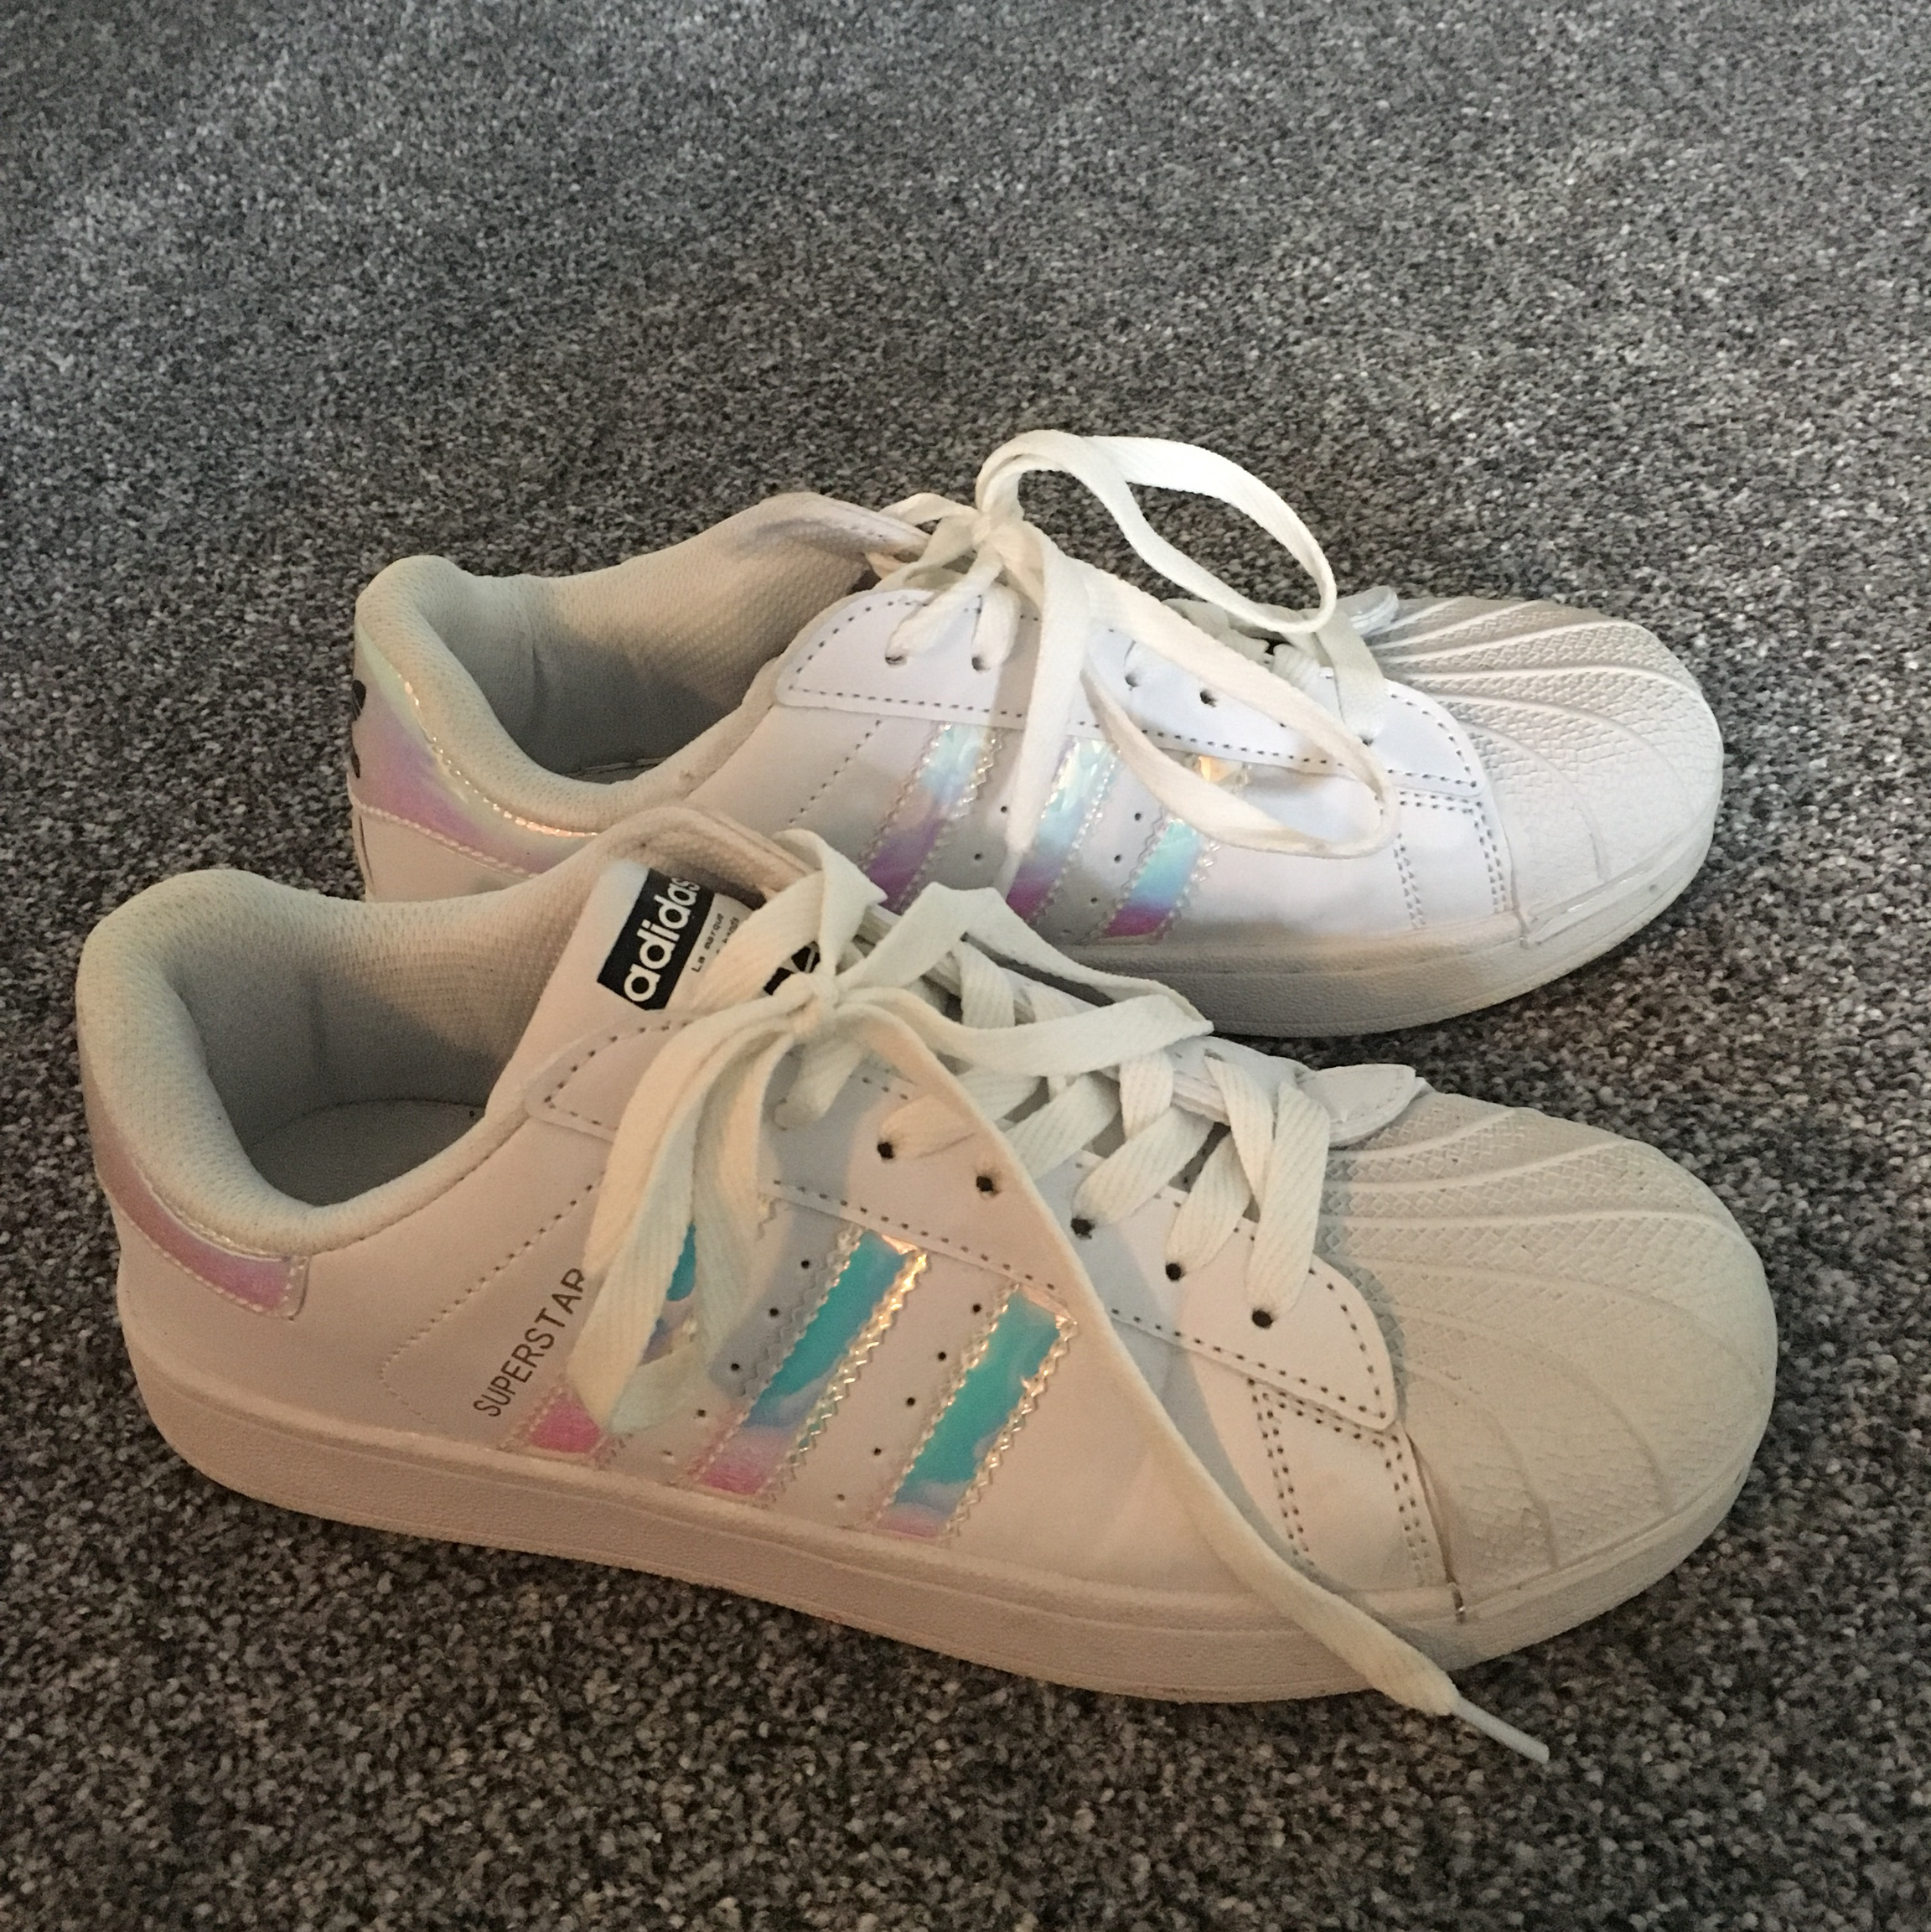 Faux Adidas superstar trainers with